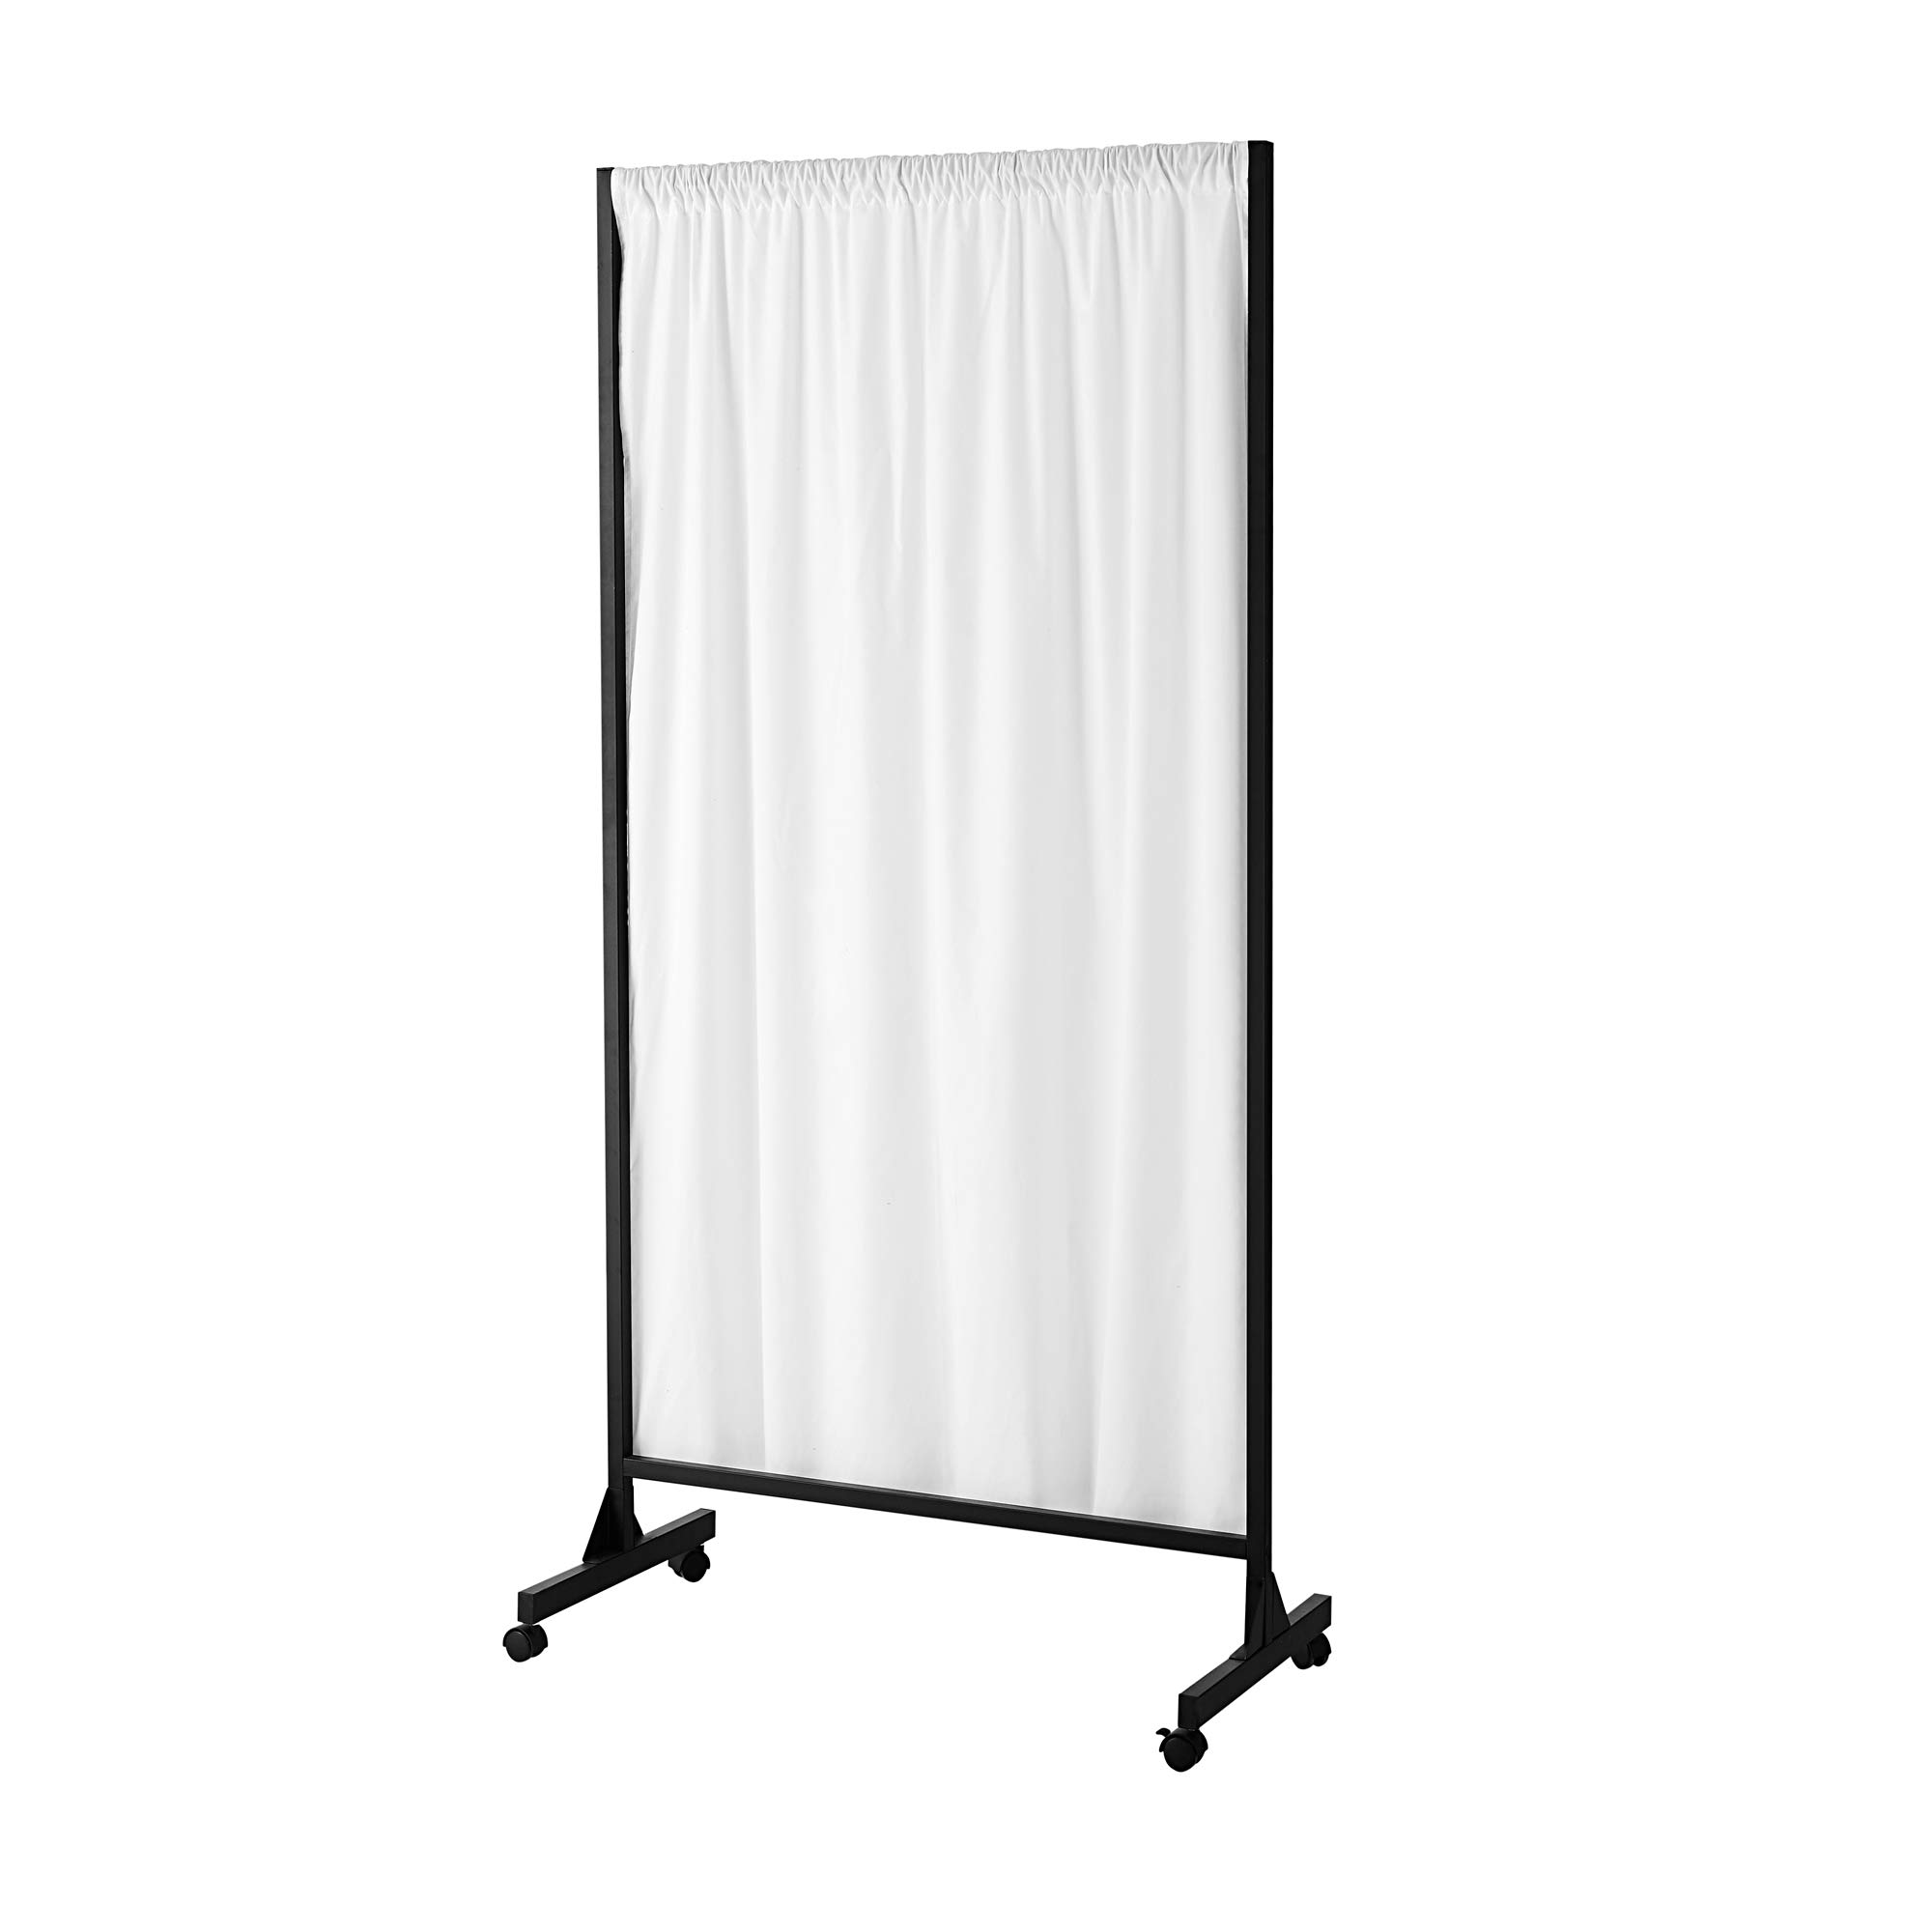 Don't Look at Me - Partial Room Divider - Black Frame with Farmhouse White Cotton Fabric